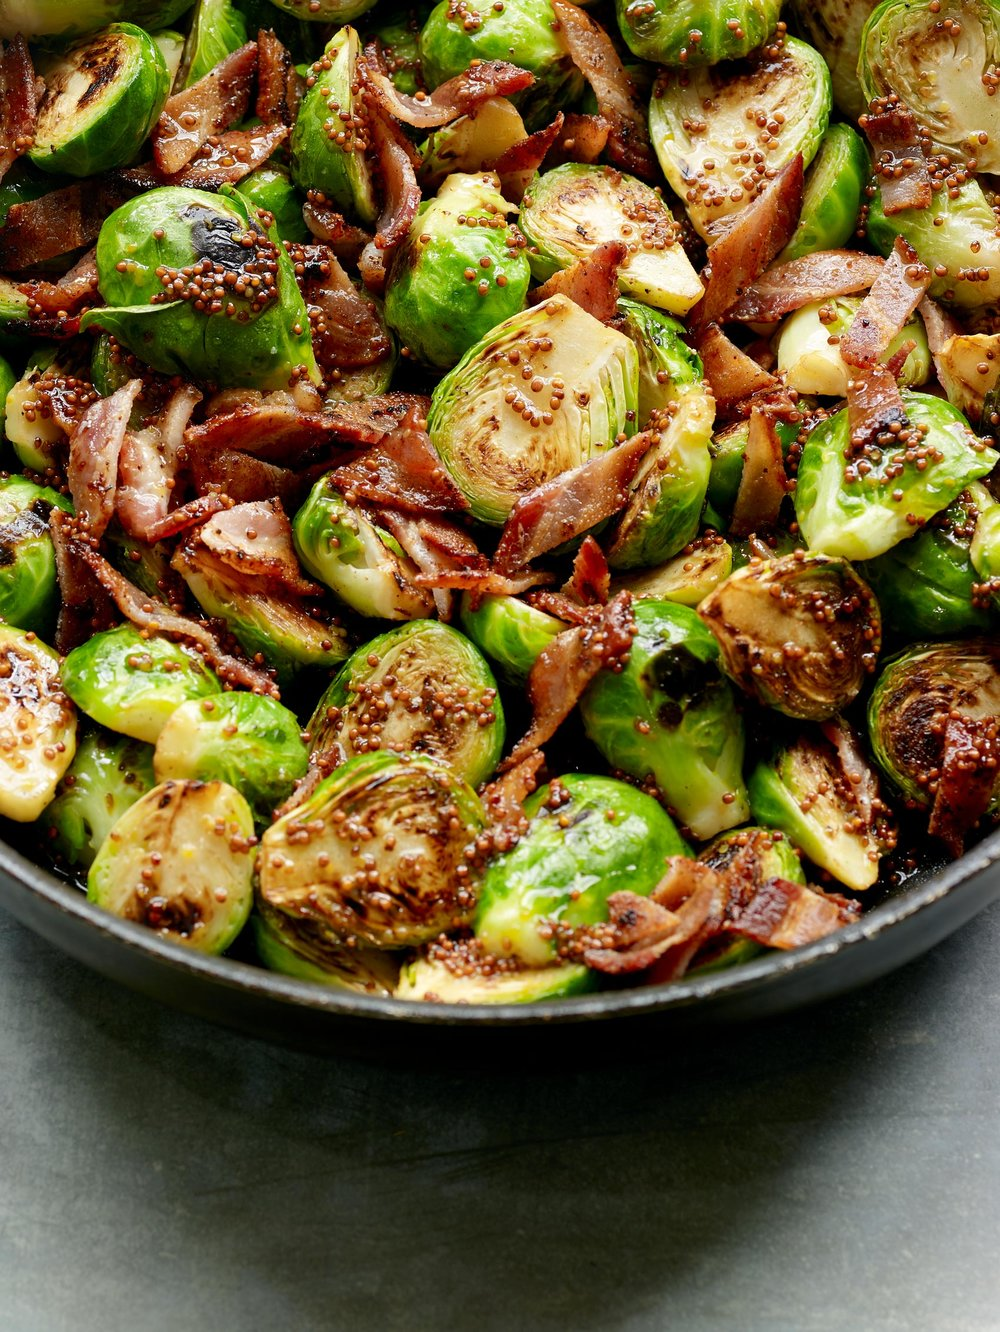 Brussels_Sprouts__2162.jpg